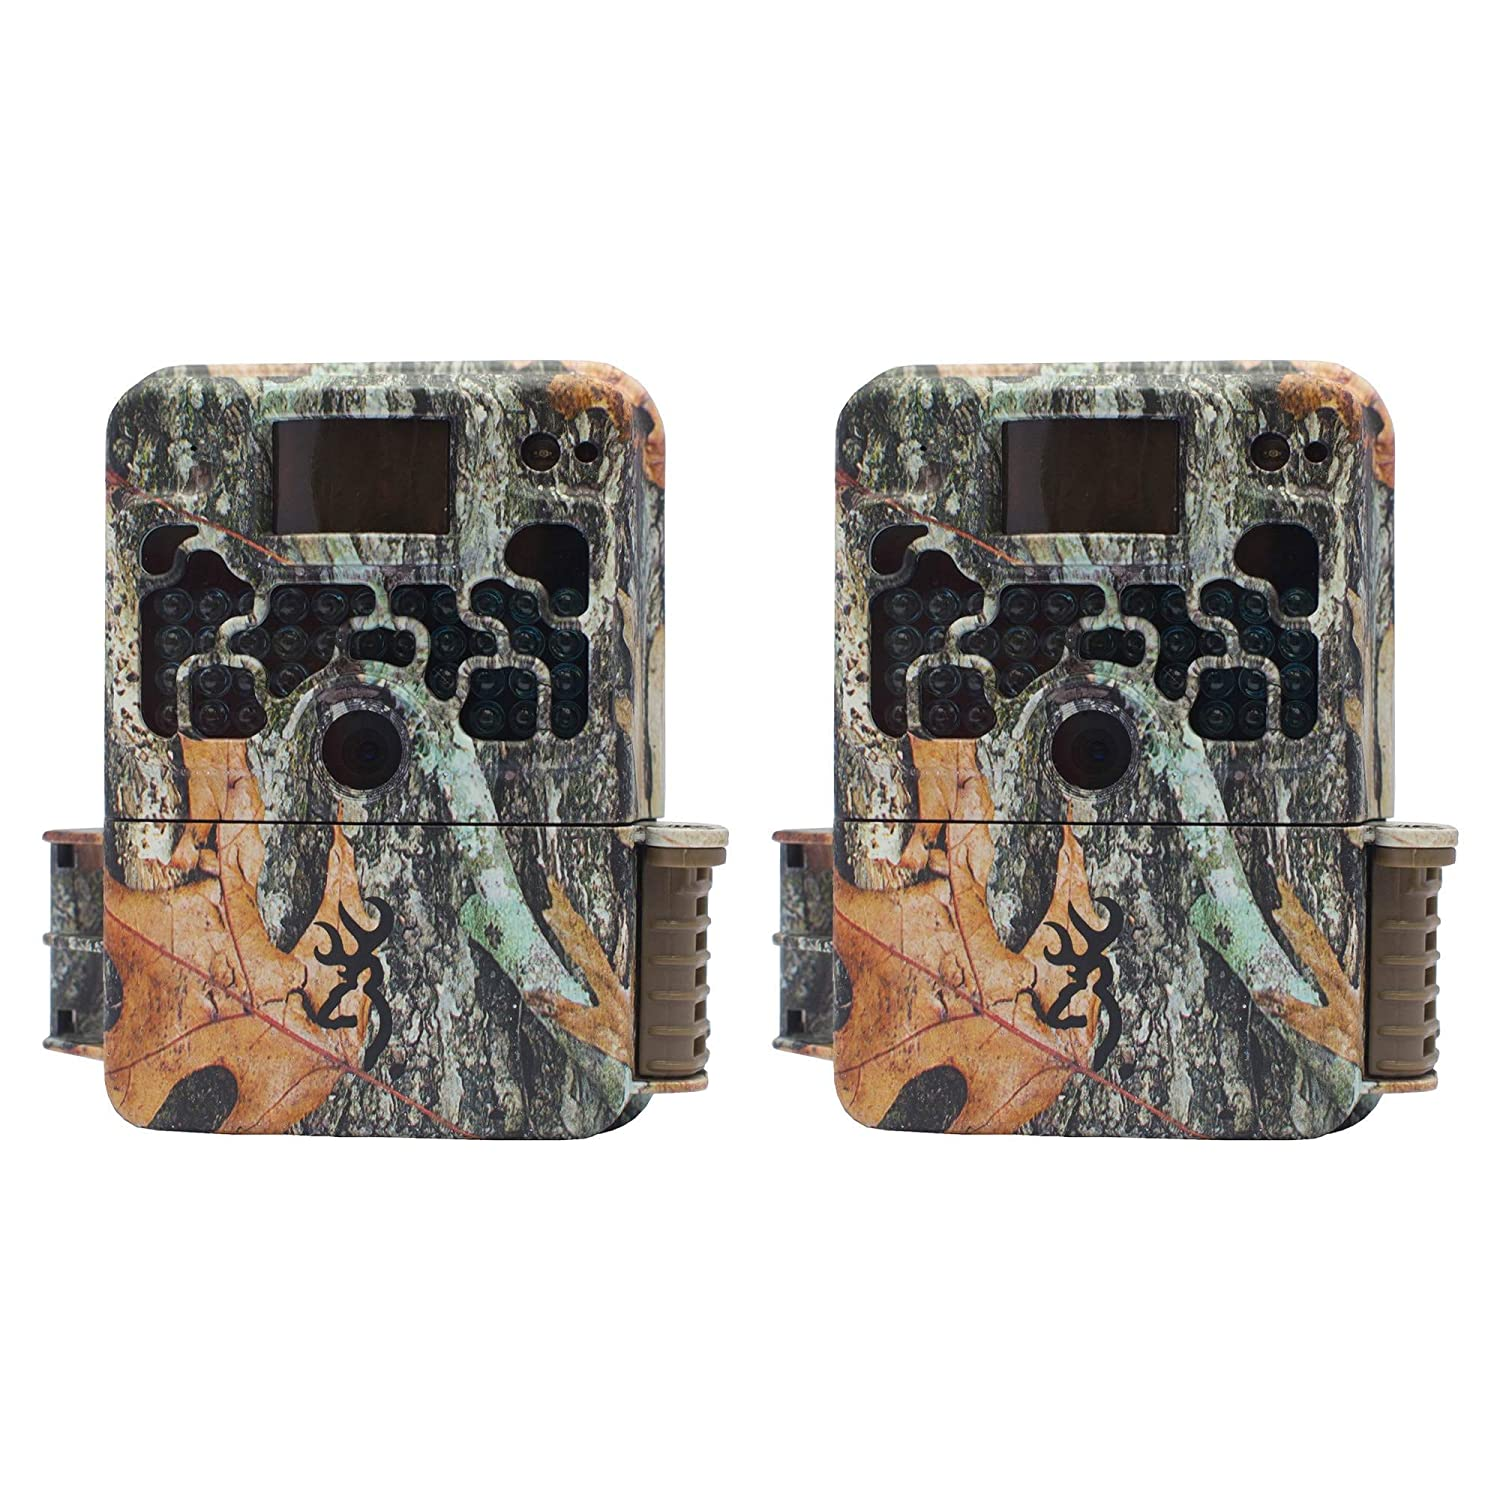 2 Browning STRIKE FORCE HD 850 Micro Trail Game Camera 16MP BTC5HD850